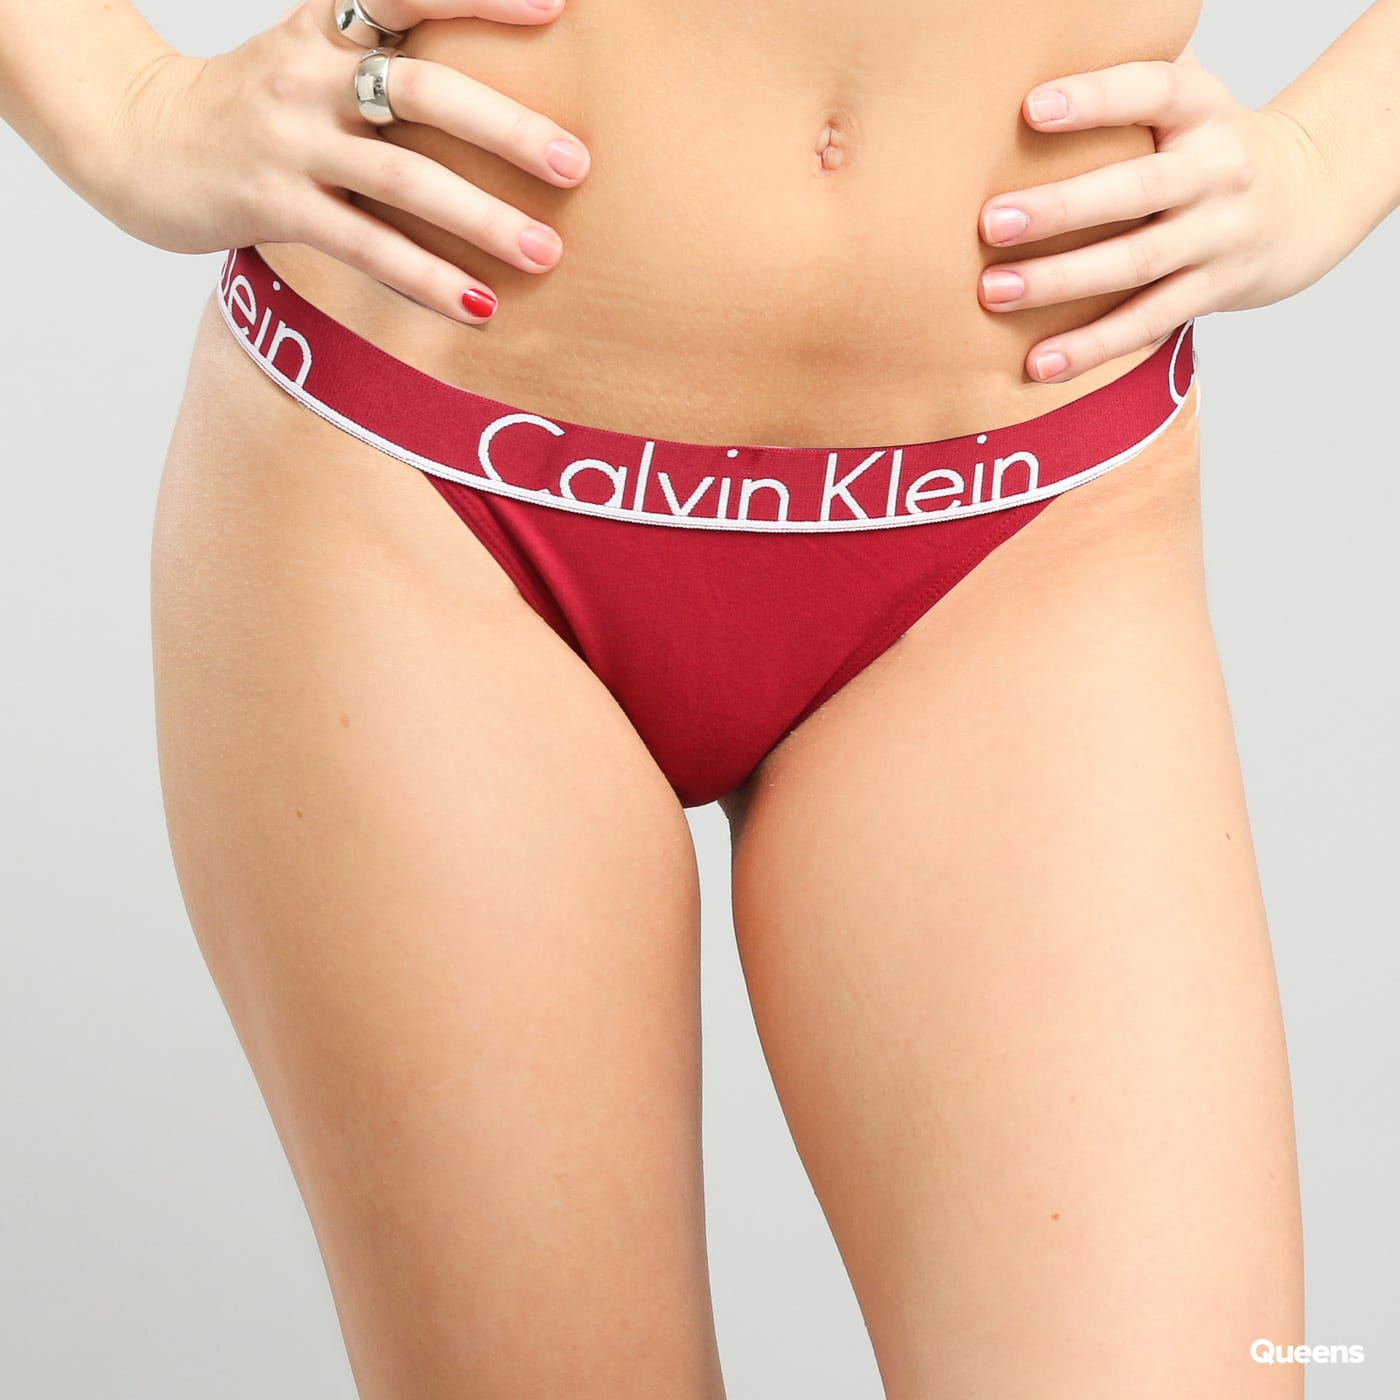 calvin klein underwear gift set triangle tanga. Black Bedroom Furniture Sets. Home Design Ideas